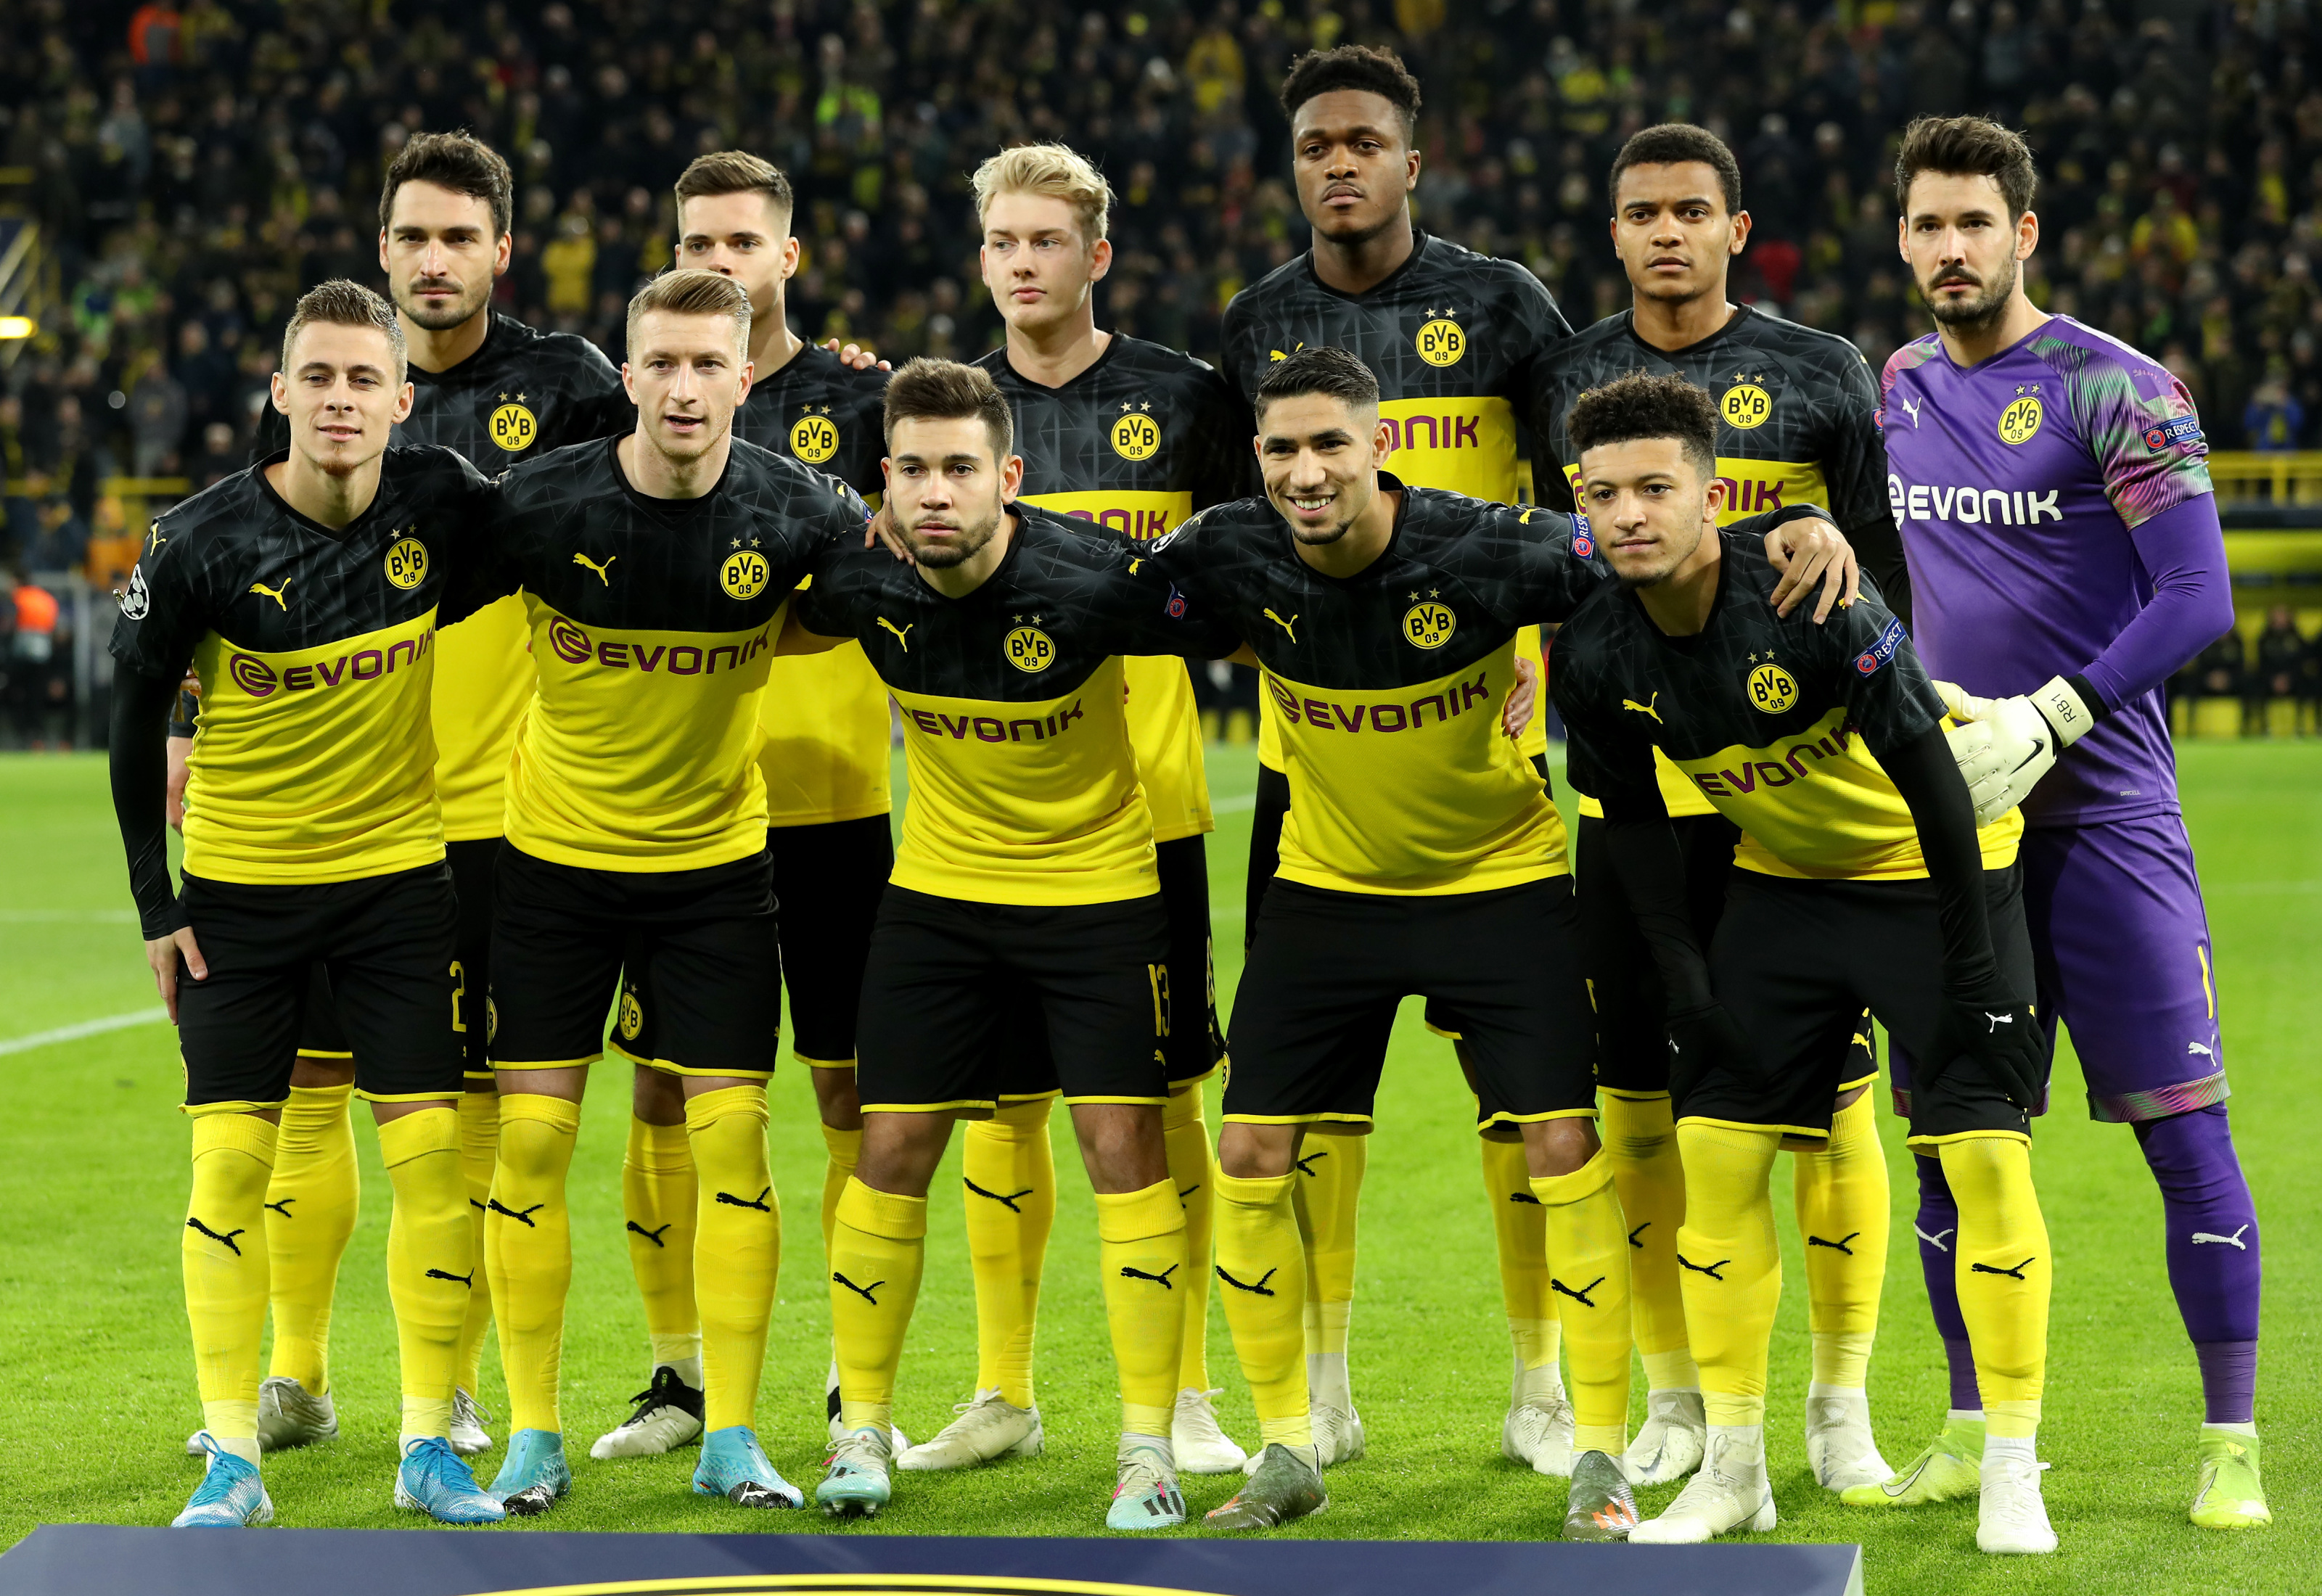 Borussia Dortmund S 3 4 3 Formation An Analysis Of Lucien Favre S System